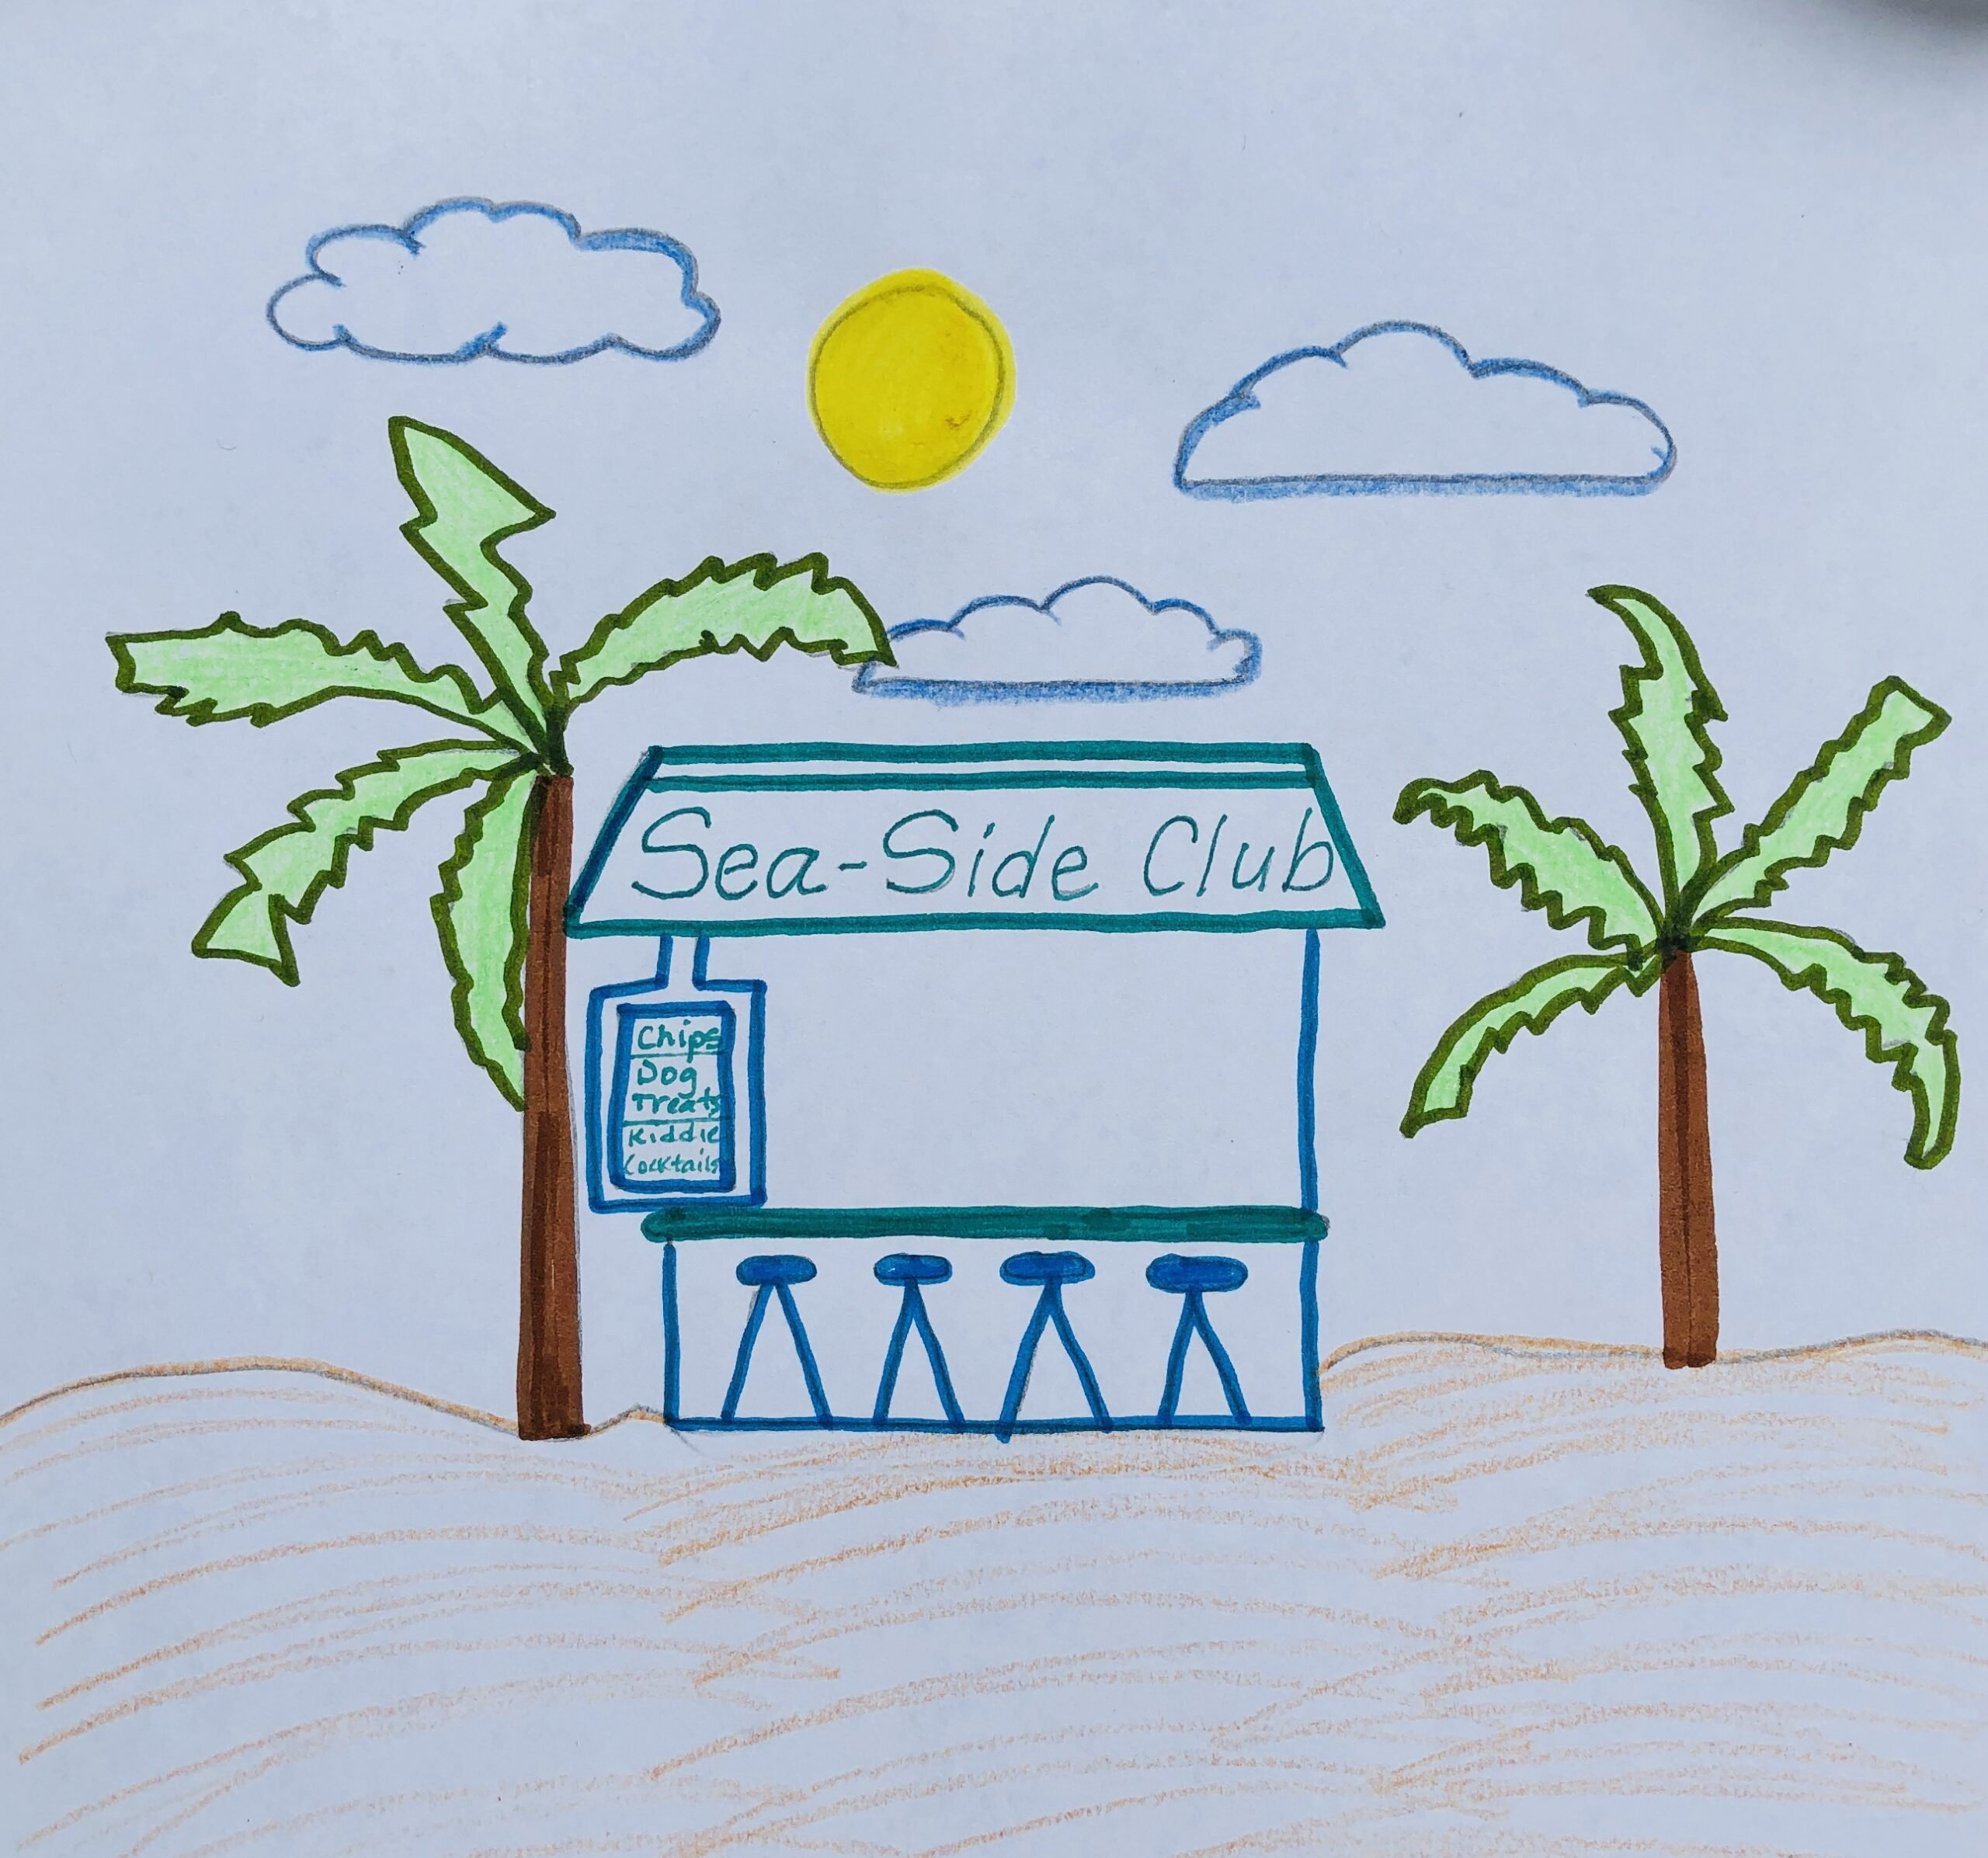 Drawing of a beach club called the Sea-Side Club for the mystery story, the Case of the Missing Chips.